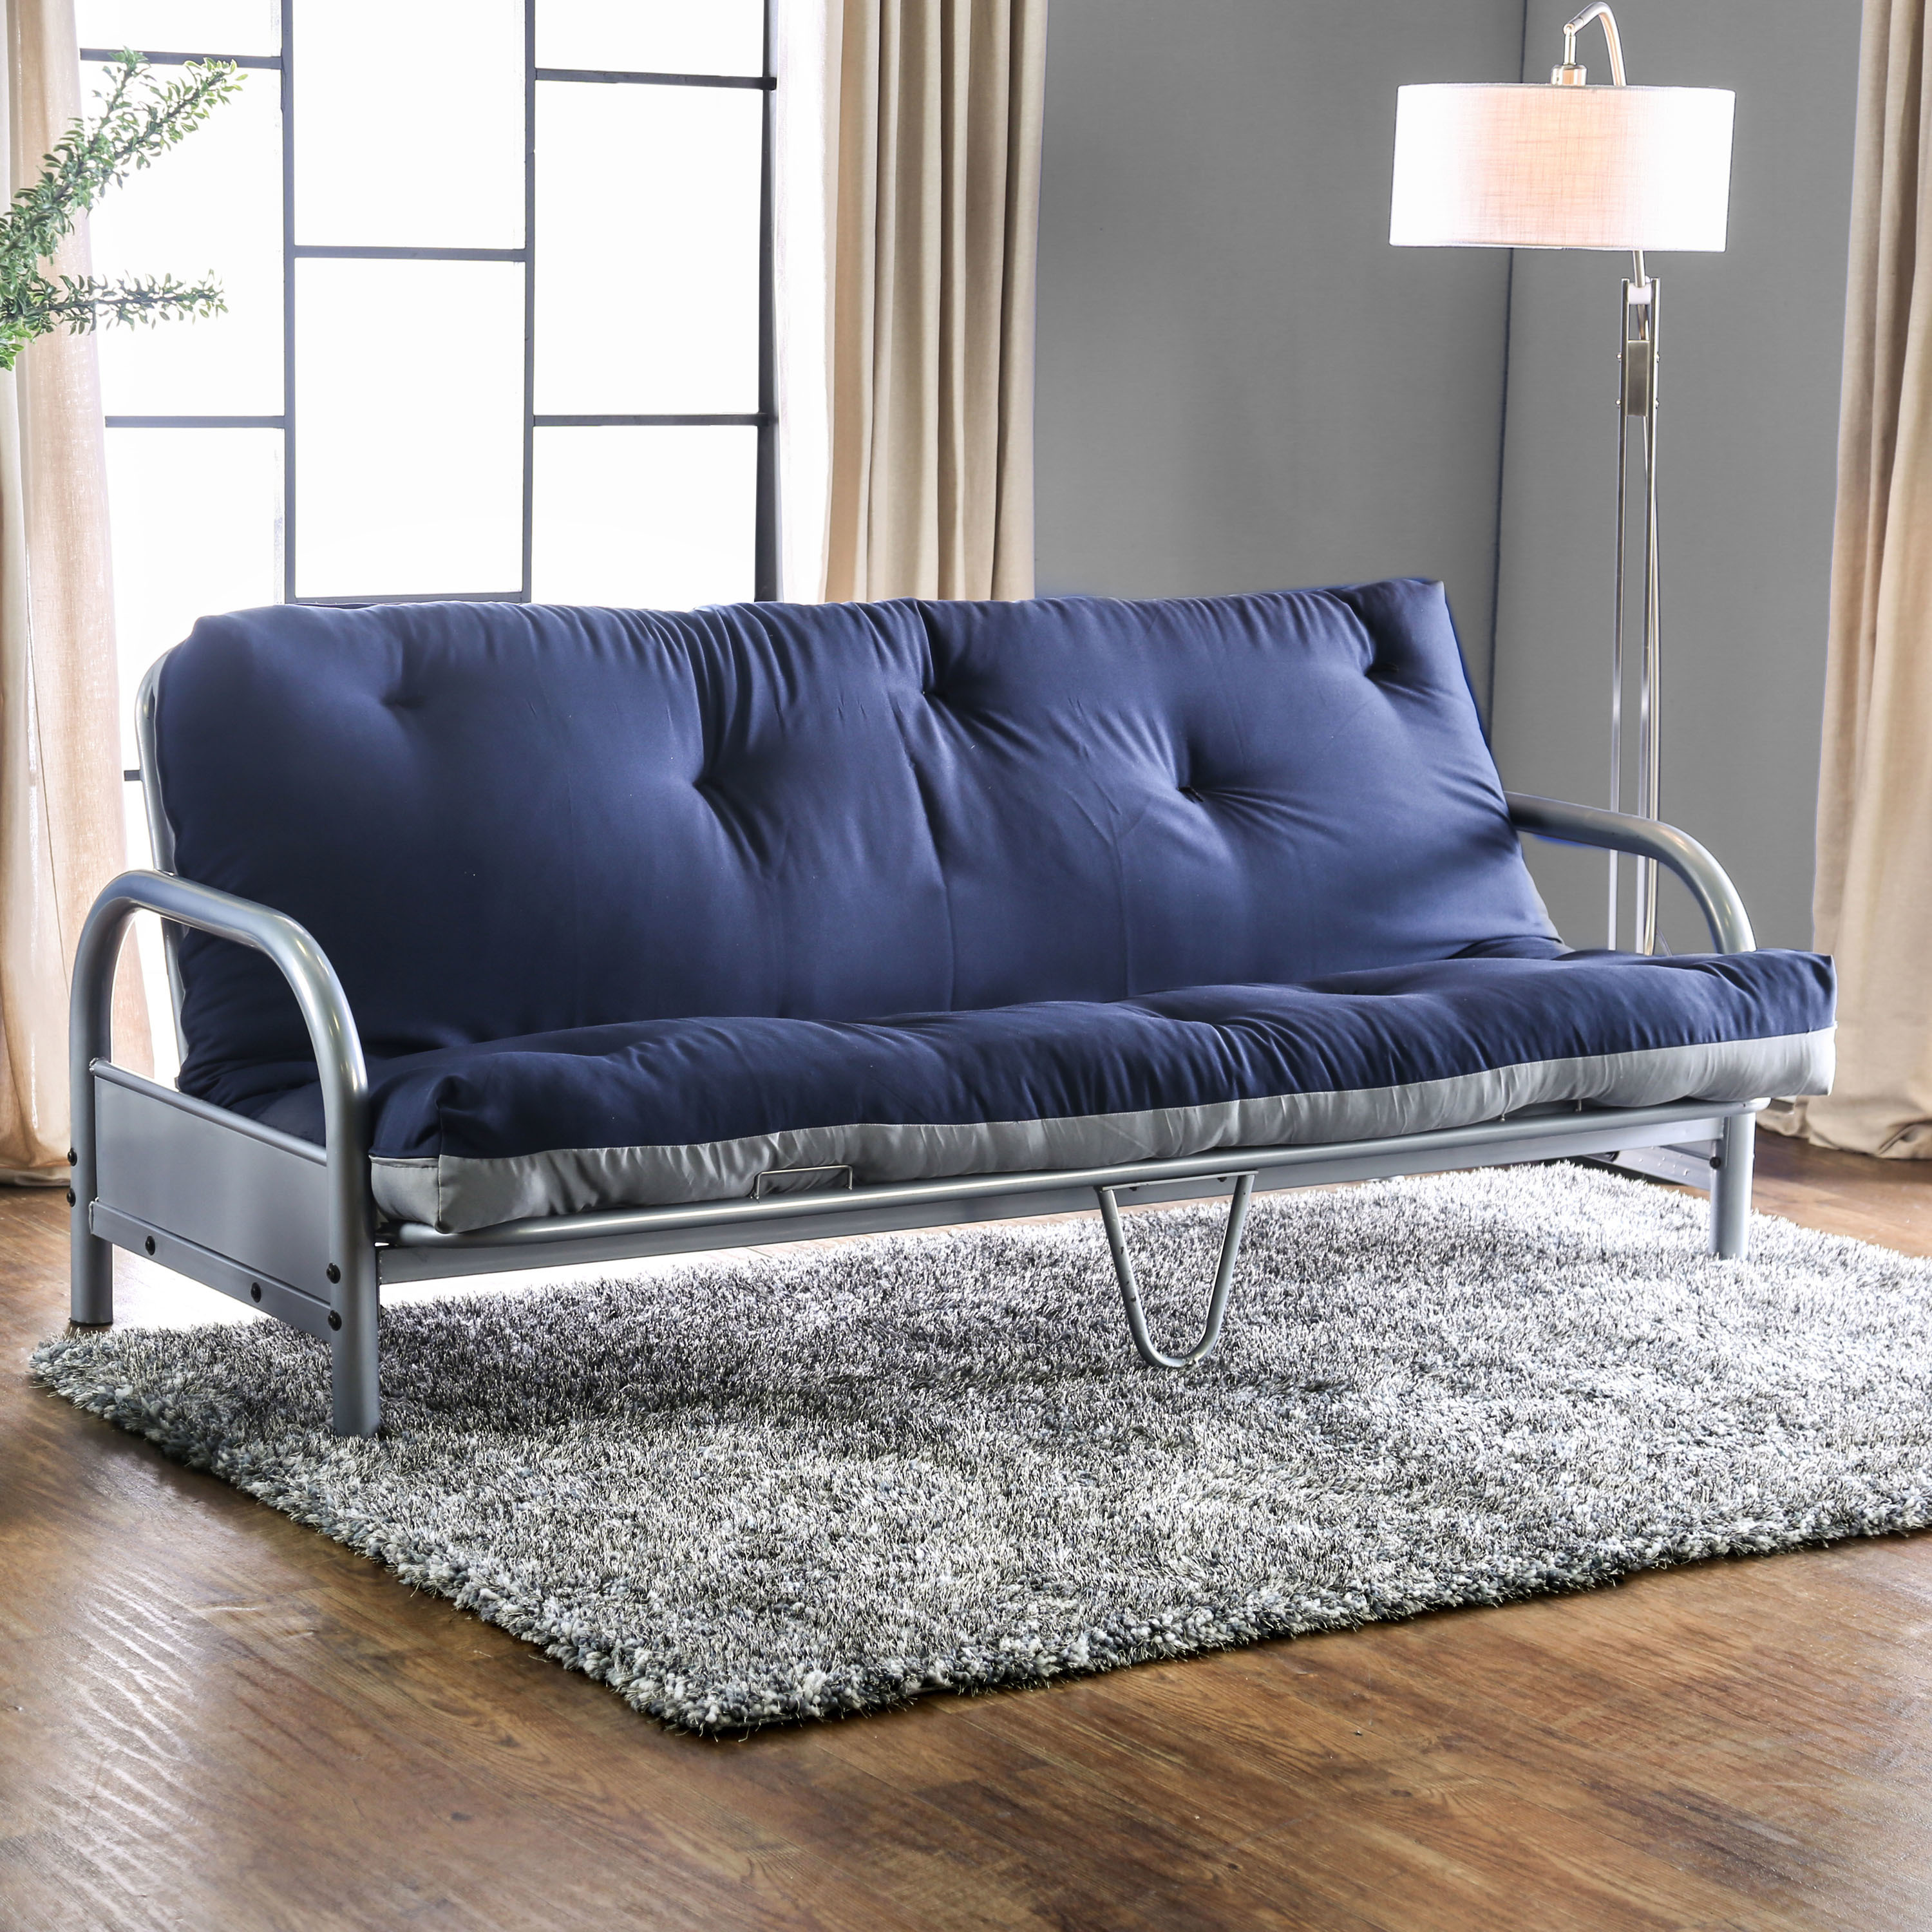 Furniture of America  Elias Contemporary Two-Tone 6-inch Tufted Futon Mattress